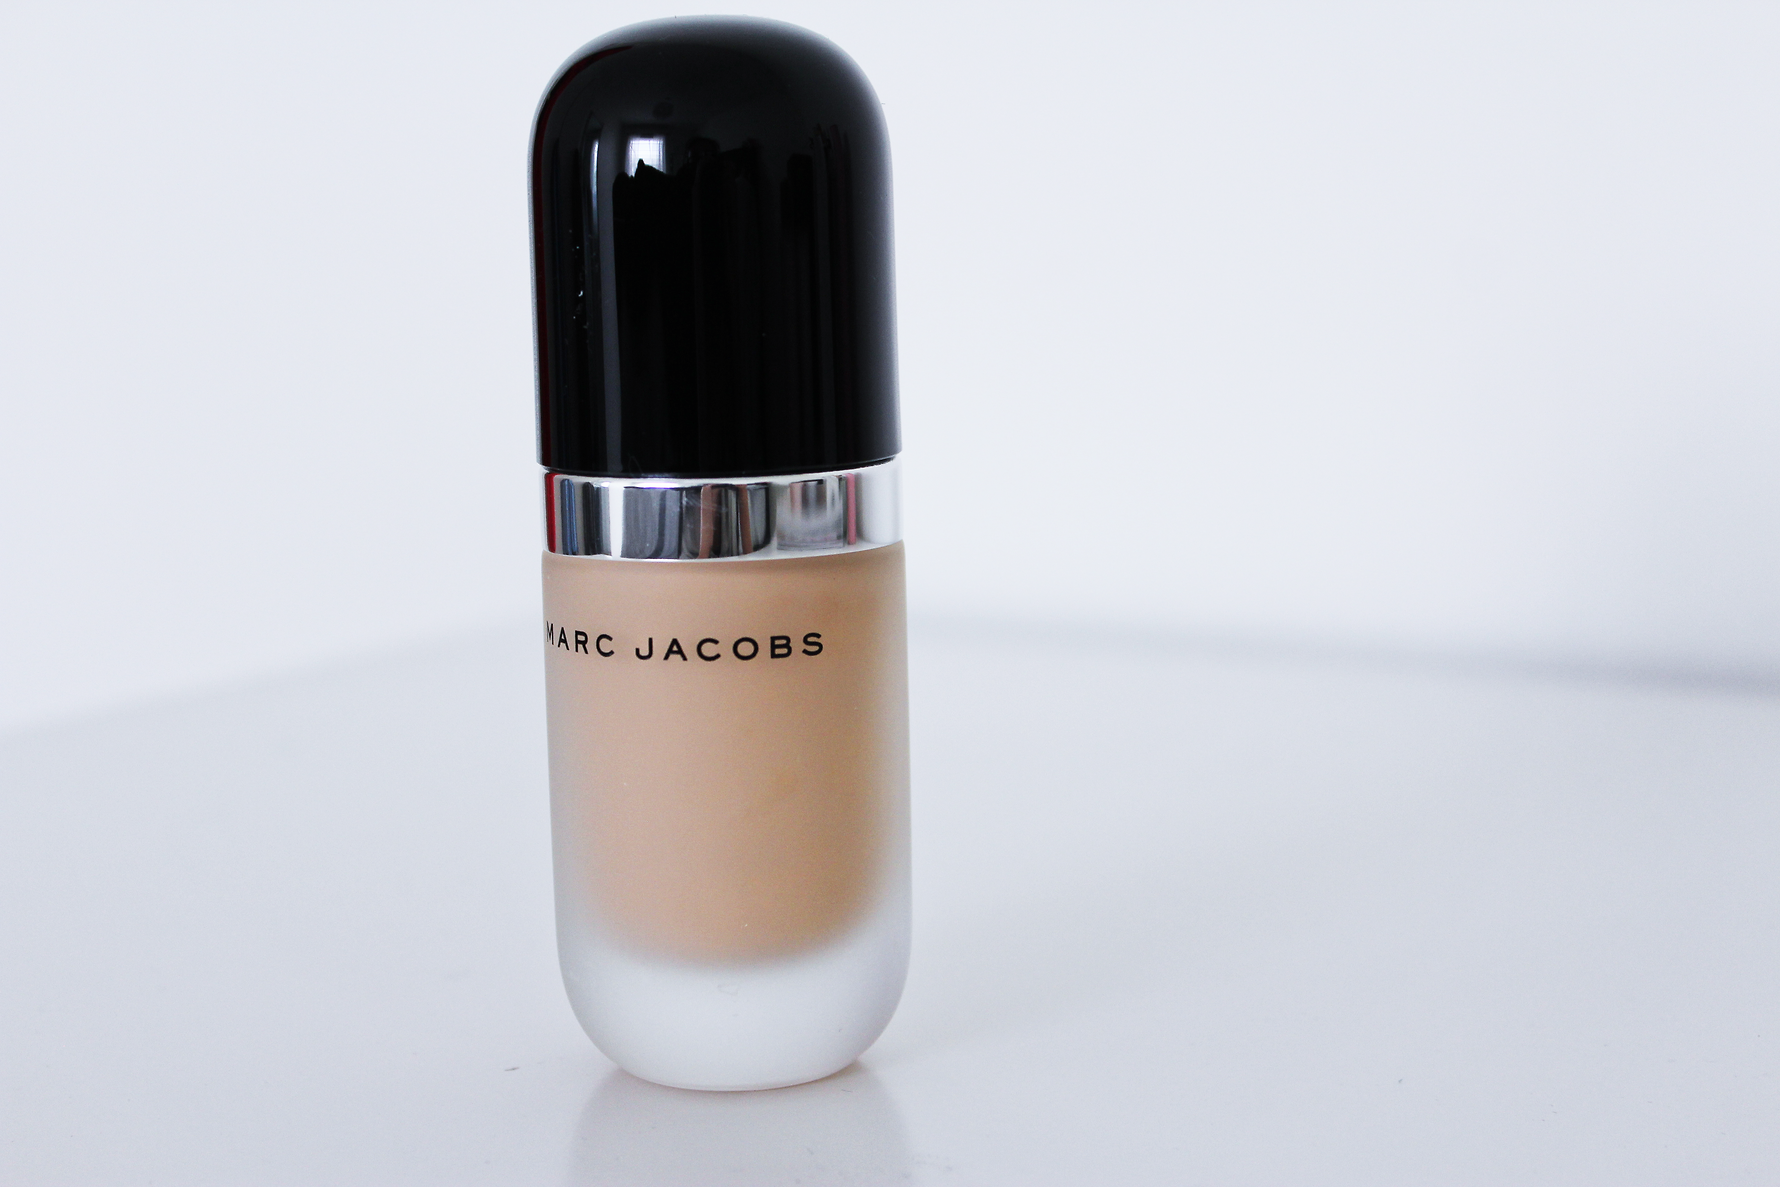 Marc jacobs remarcable foundation review